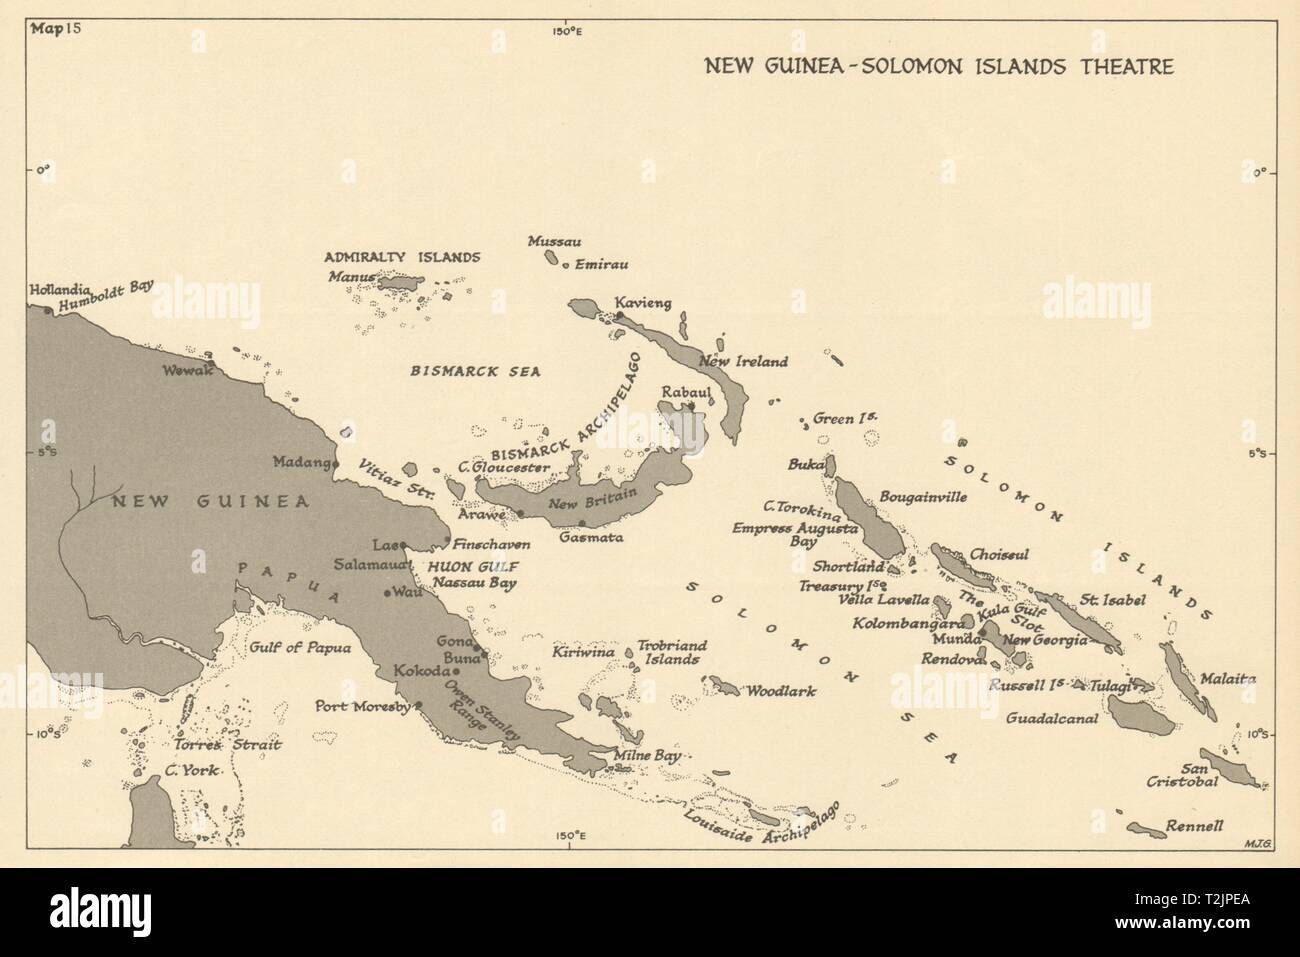 New Guinea & Solomon Islands Theatre  World War 2  Pacific